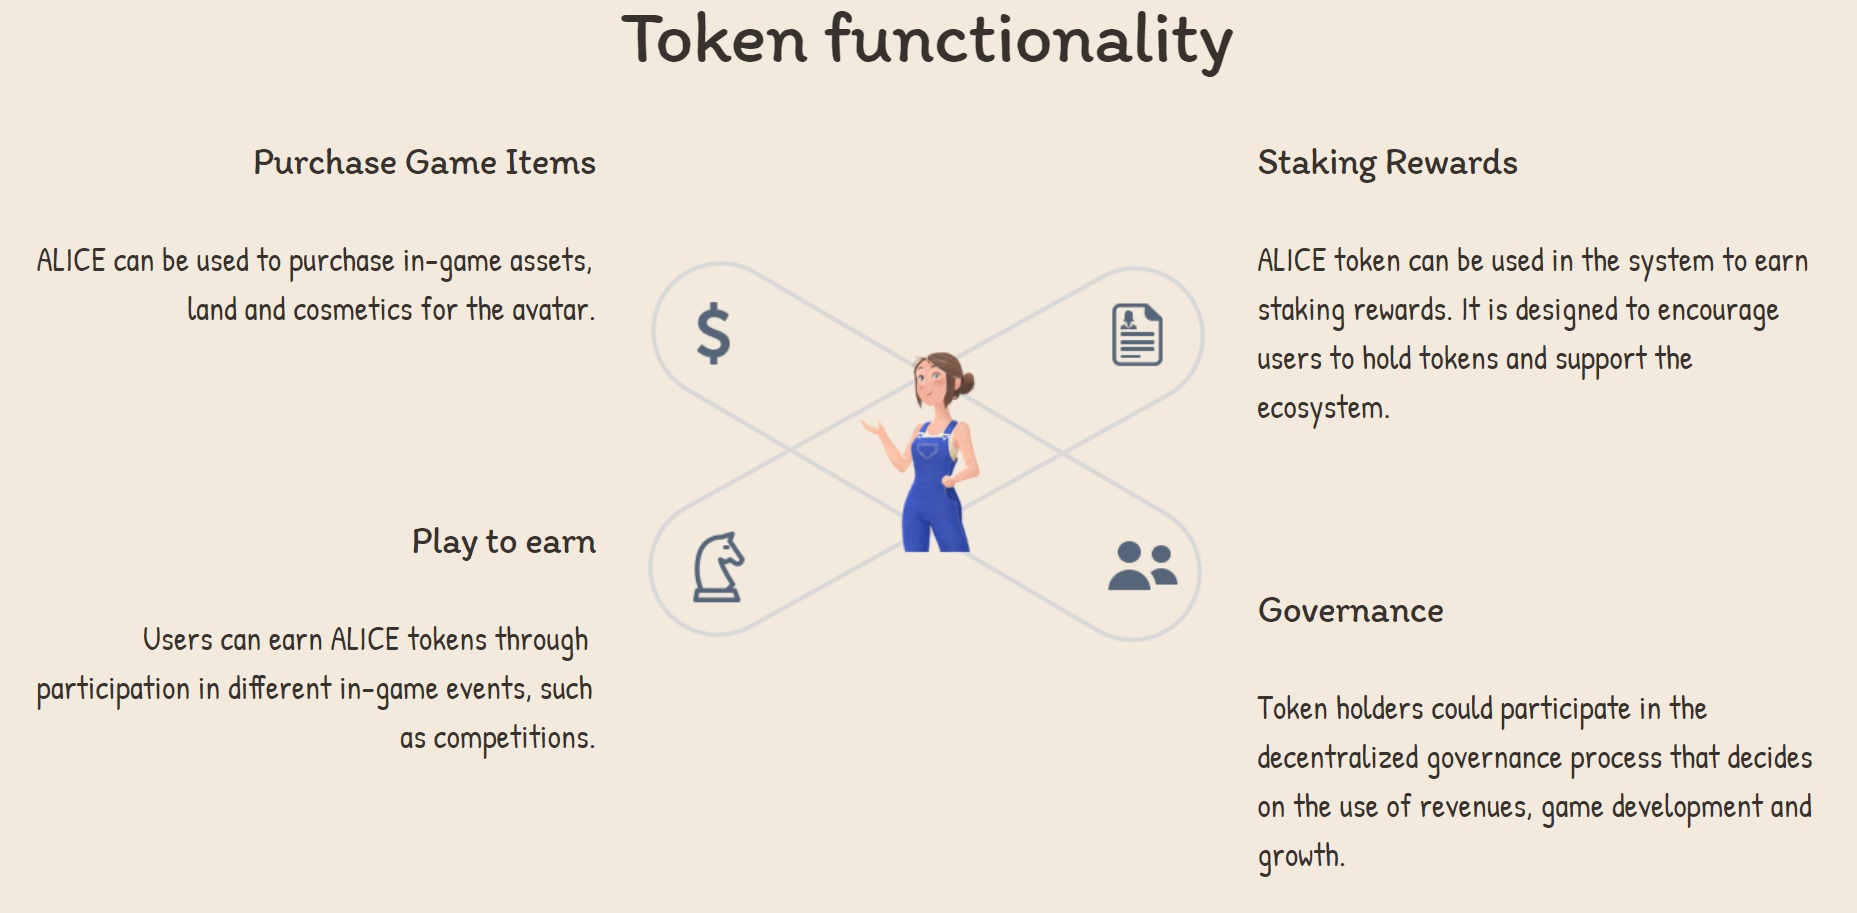 Use cases of the ALIC token